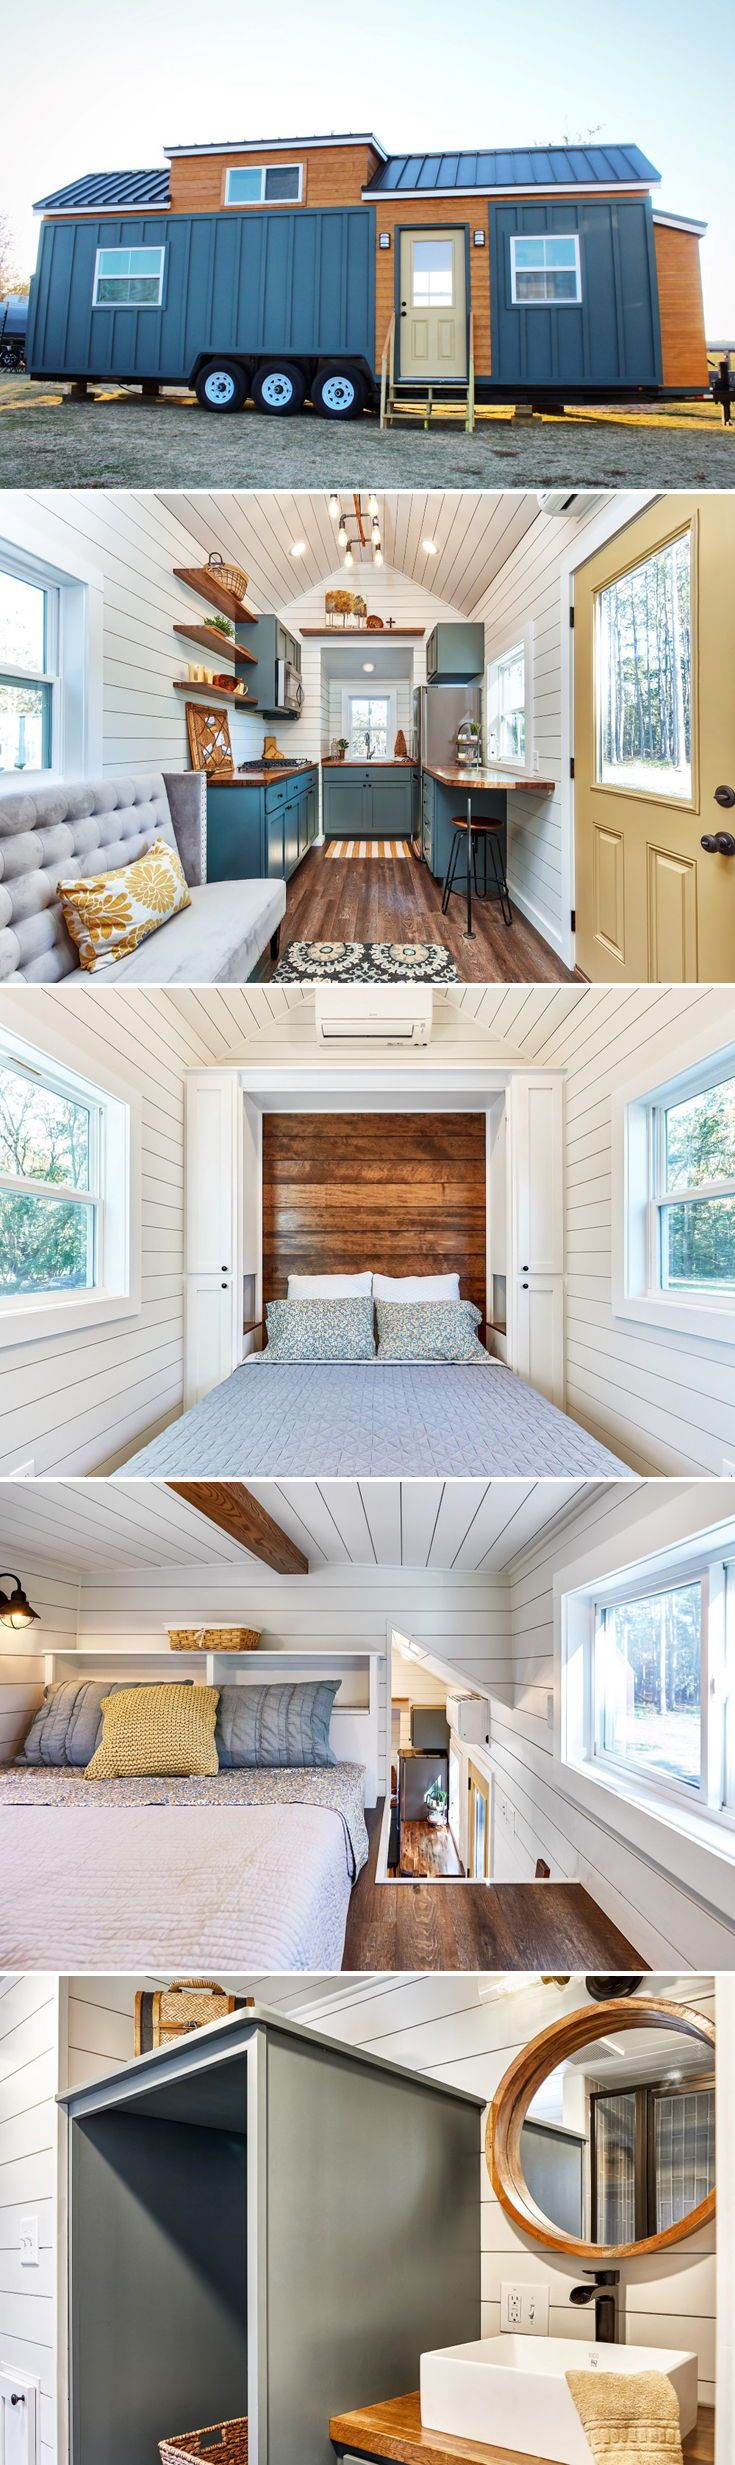 Built by mustard seed tiny homes the cypress is  two bedroom house featuring main floor master with murphy bed that converts into desk to also home pinterest rh